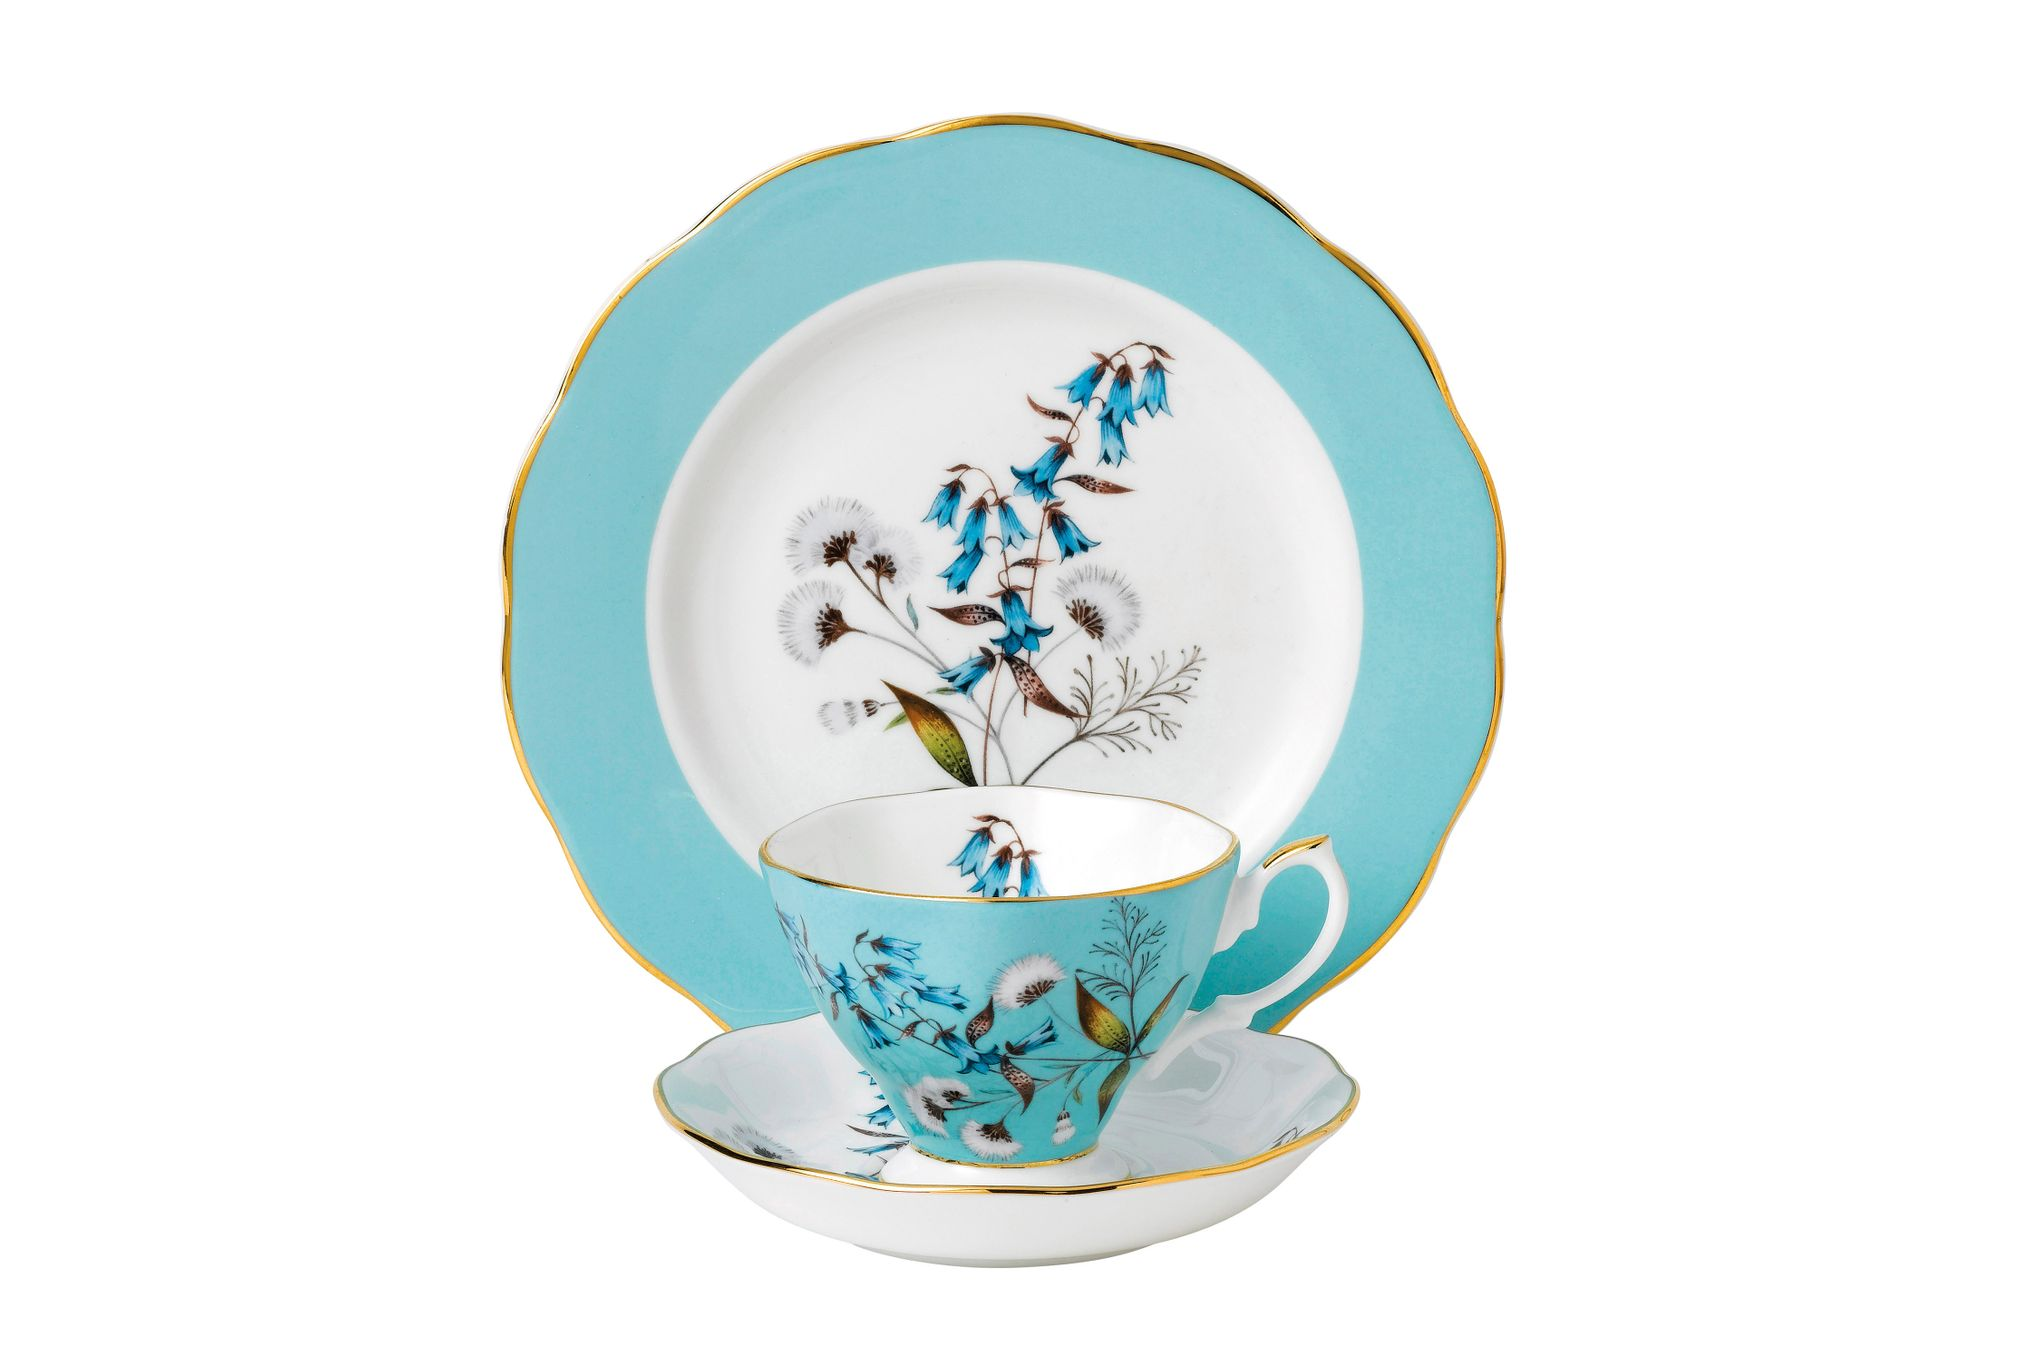 Royal Albert 100 Years of Royal Albert 3 Piece Set Festival 1950, Teacup & Saucer, Plate 20cm thumb 1